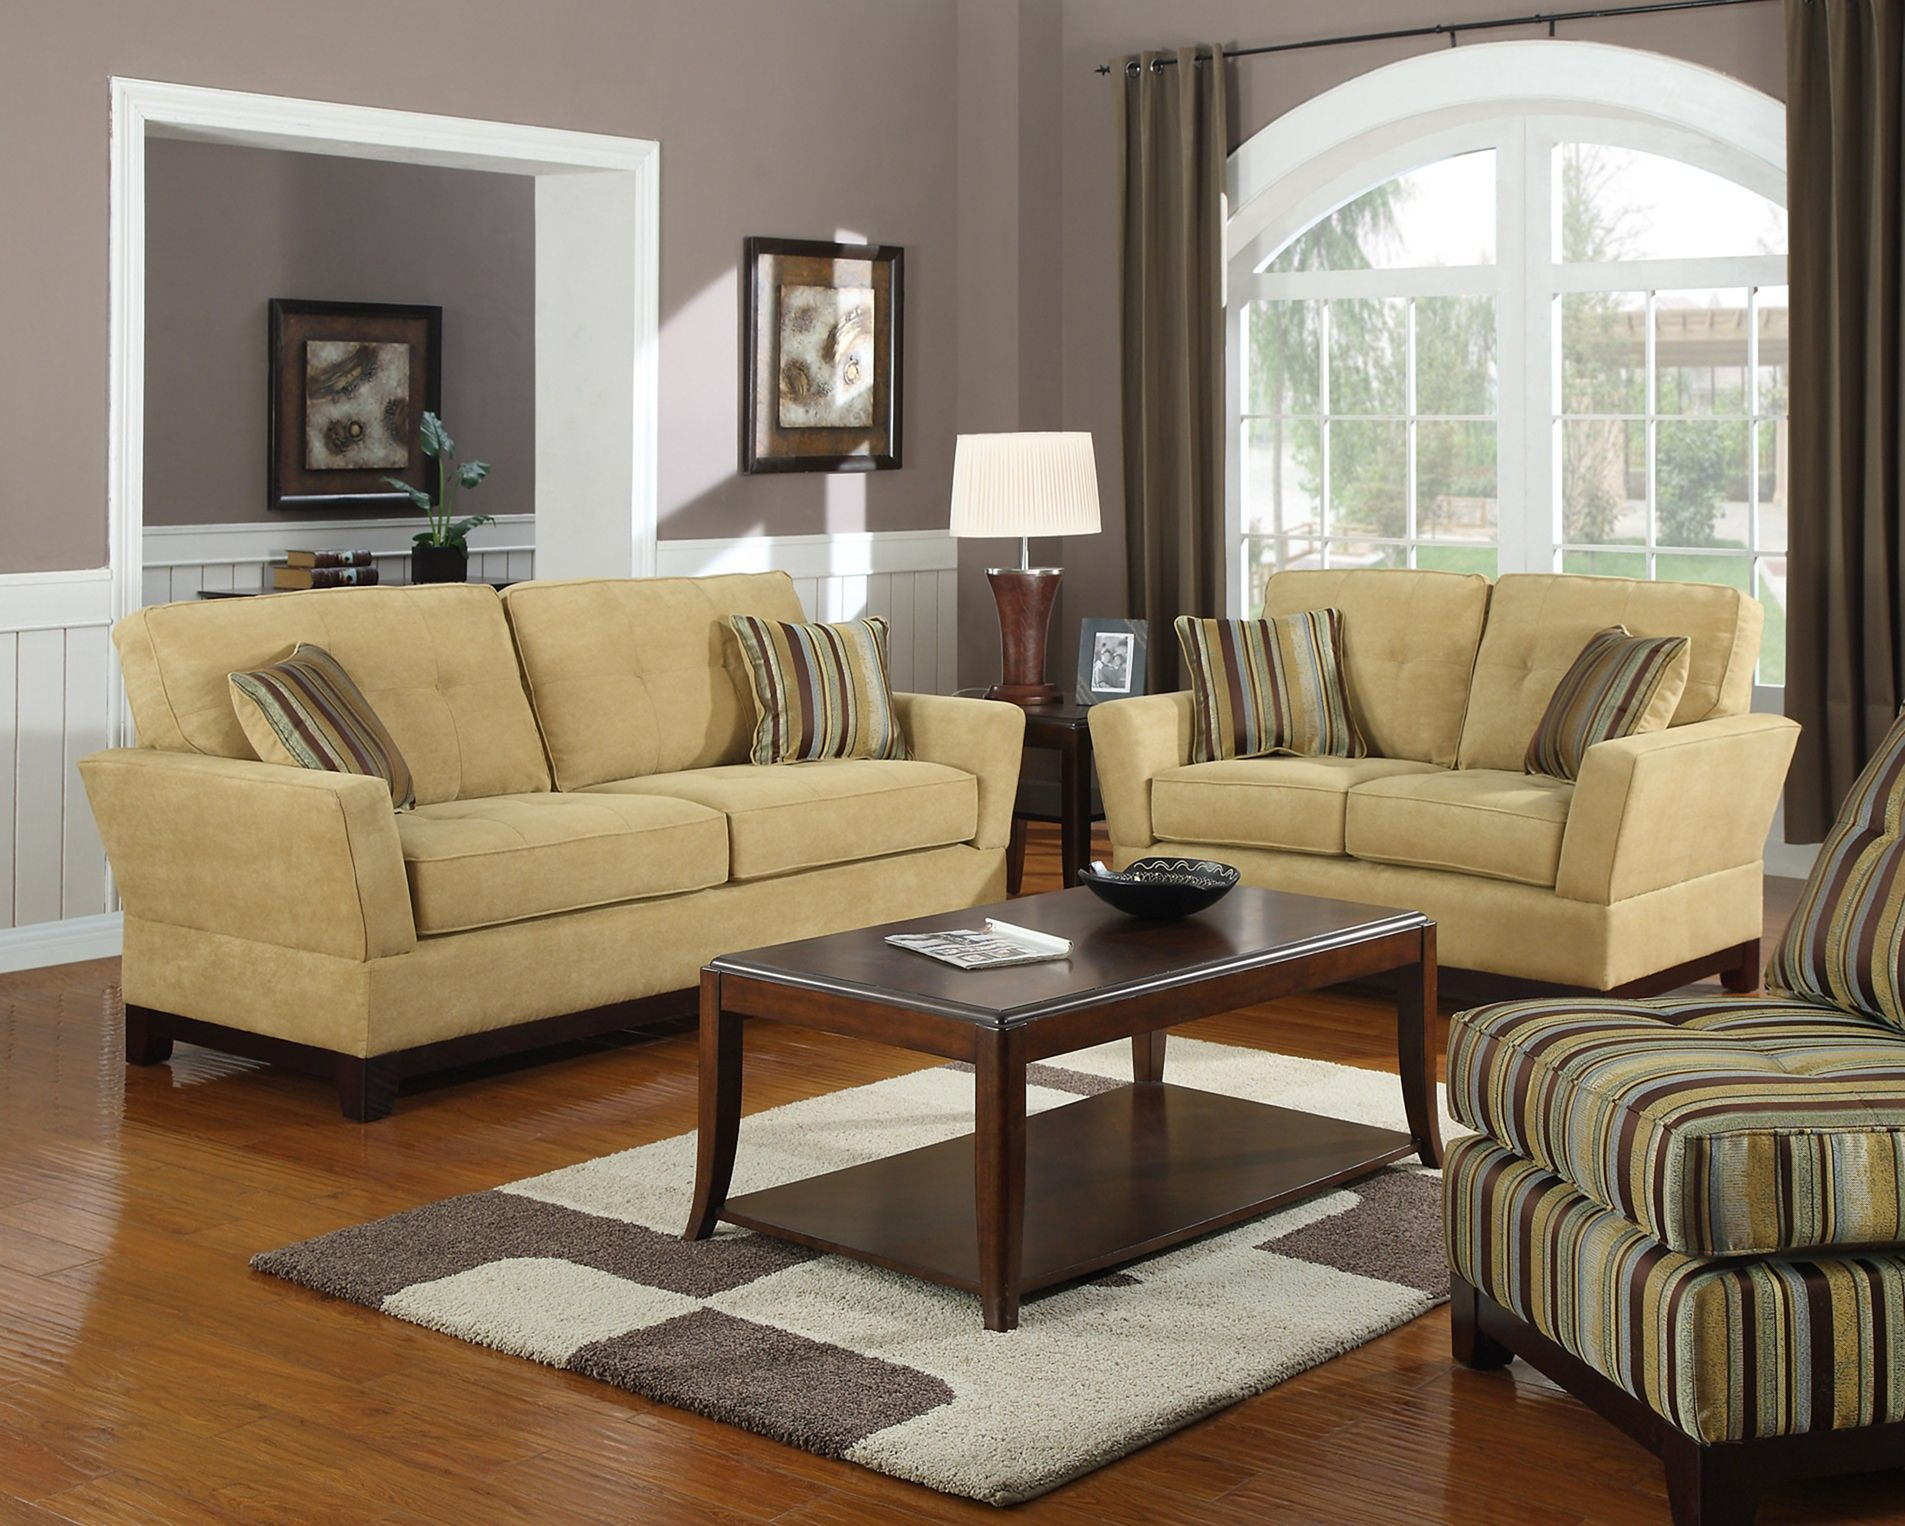 10 Beautiful Sofa Ideas for Your Small Living Room   Small ...